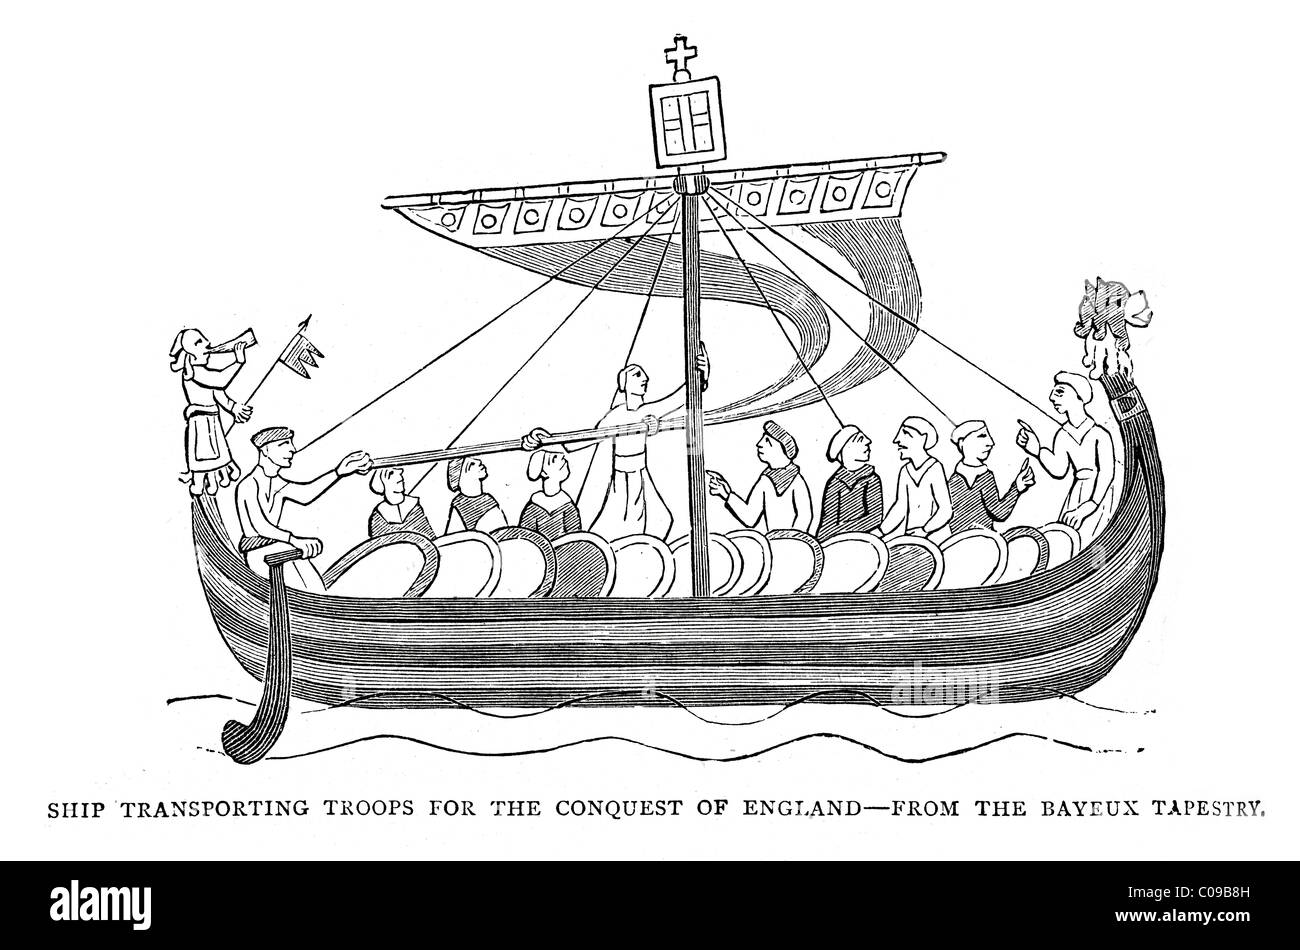 Vintage engraving of a ship transporting troops for the conquest of england, from the Bayeux Tapestry - Stock Image